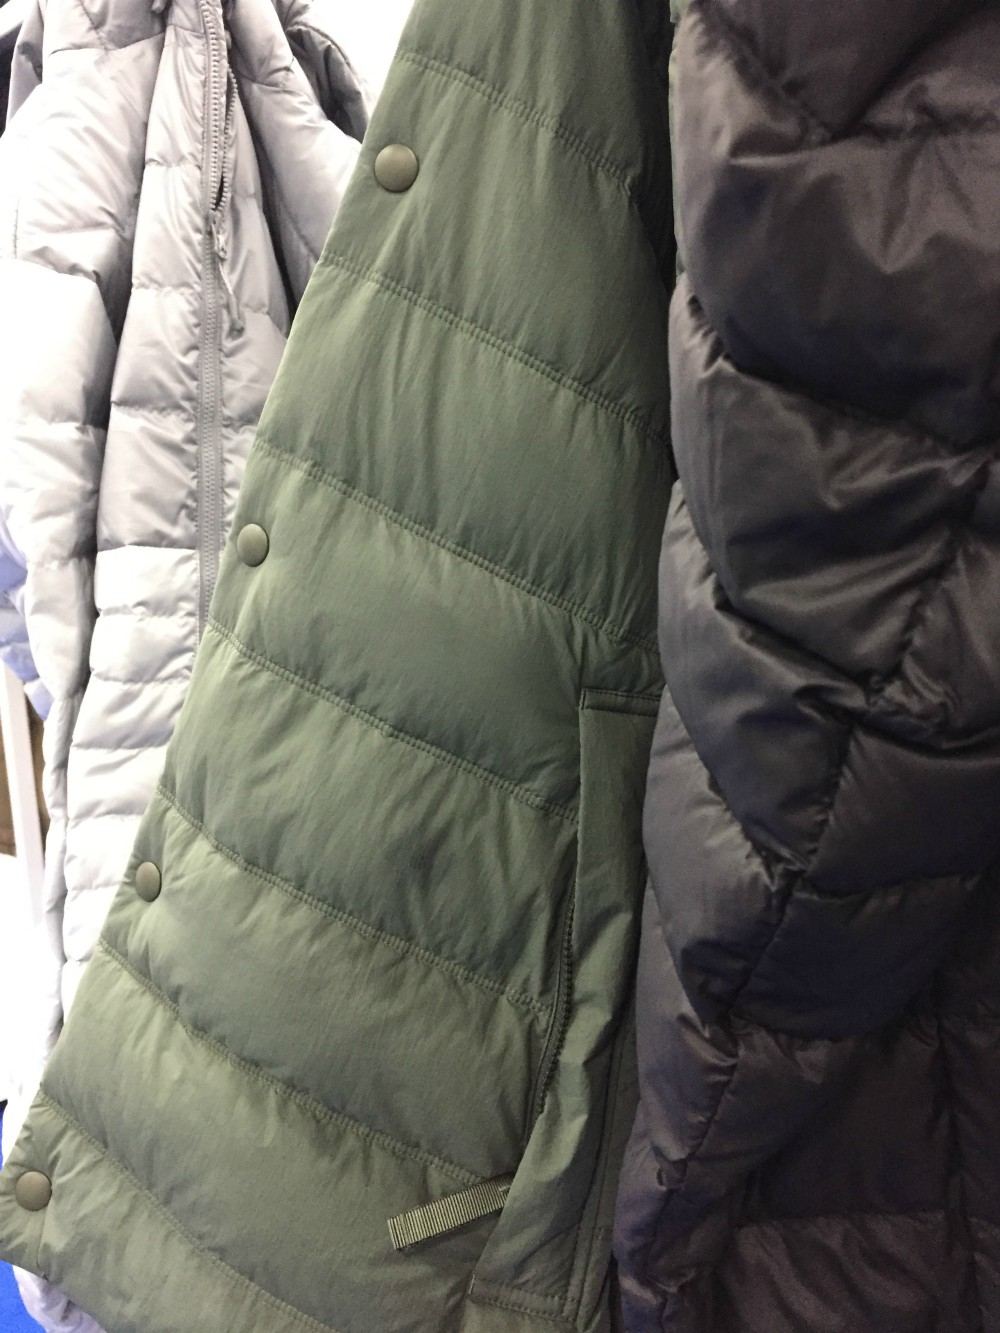 ReDown recycled down jackets. The Functional Fabric Fair brought together key players in the materials space, as well as newcomers looking to shake up the industry.